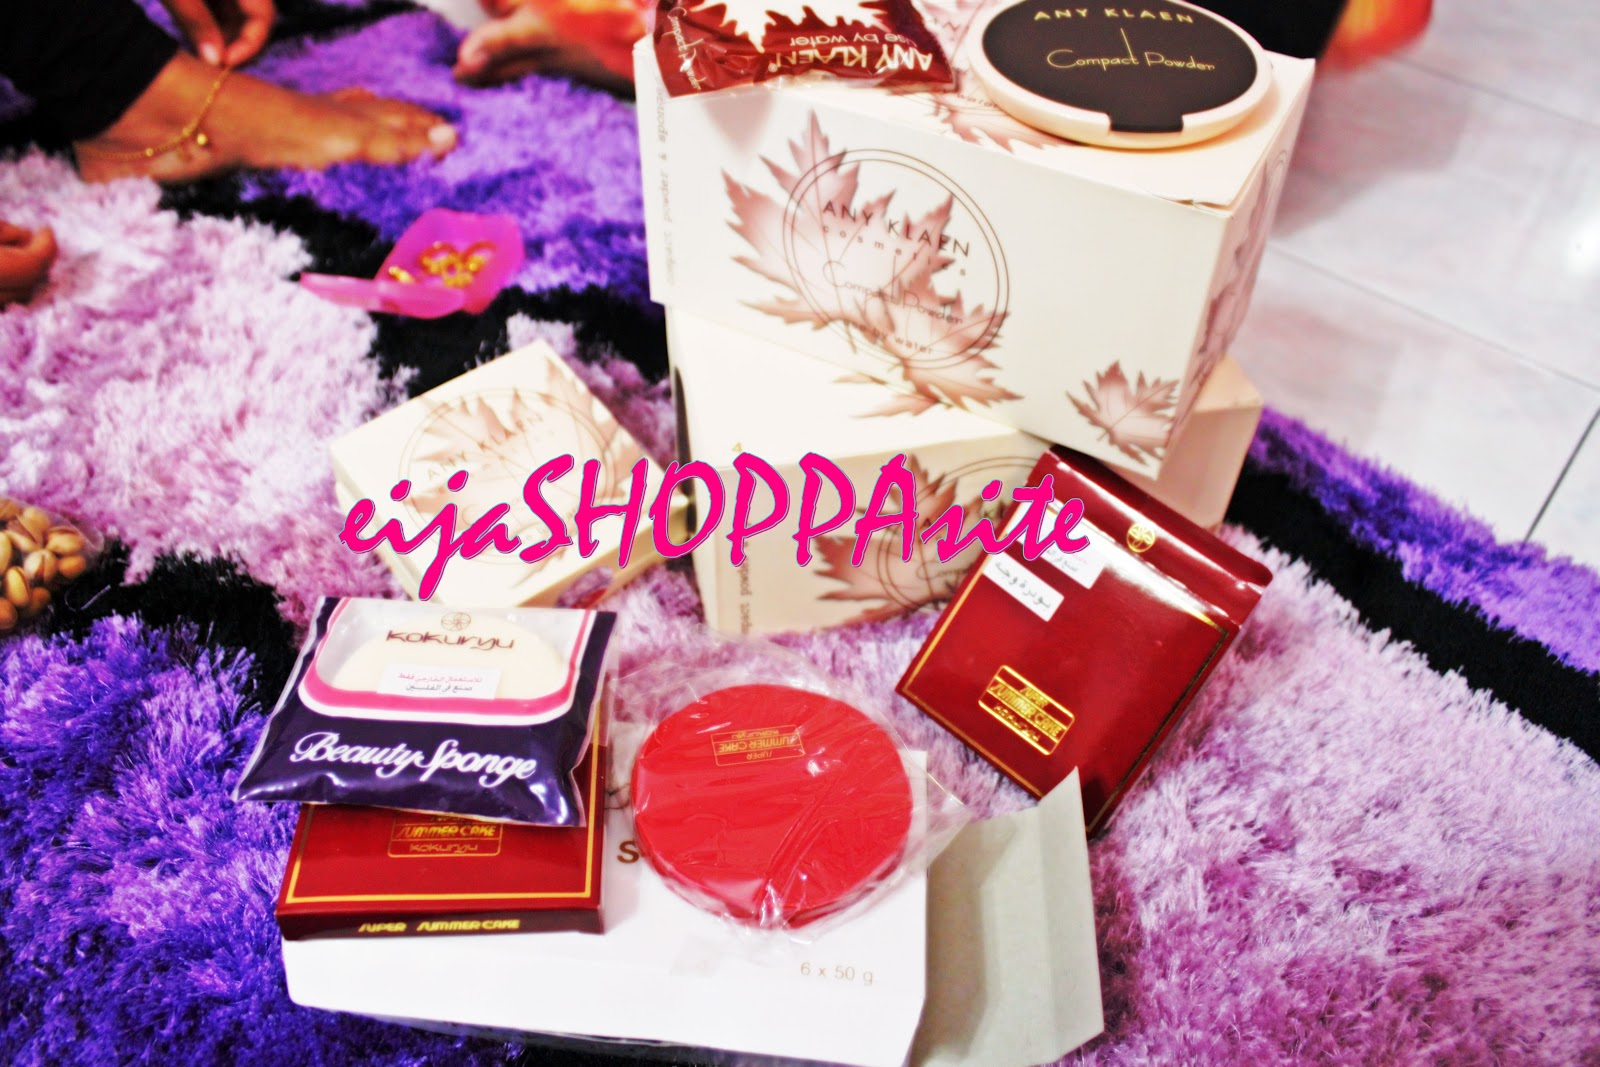 Roziyaniza ShopSITE ANY KLAEN COMPACT POWDER FROM SYRIA